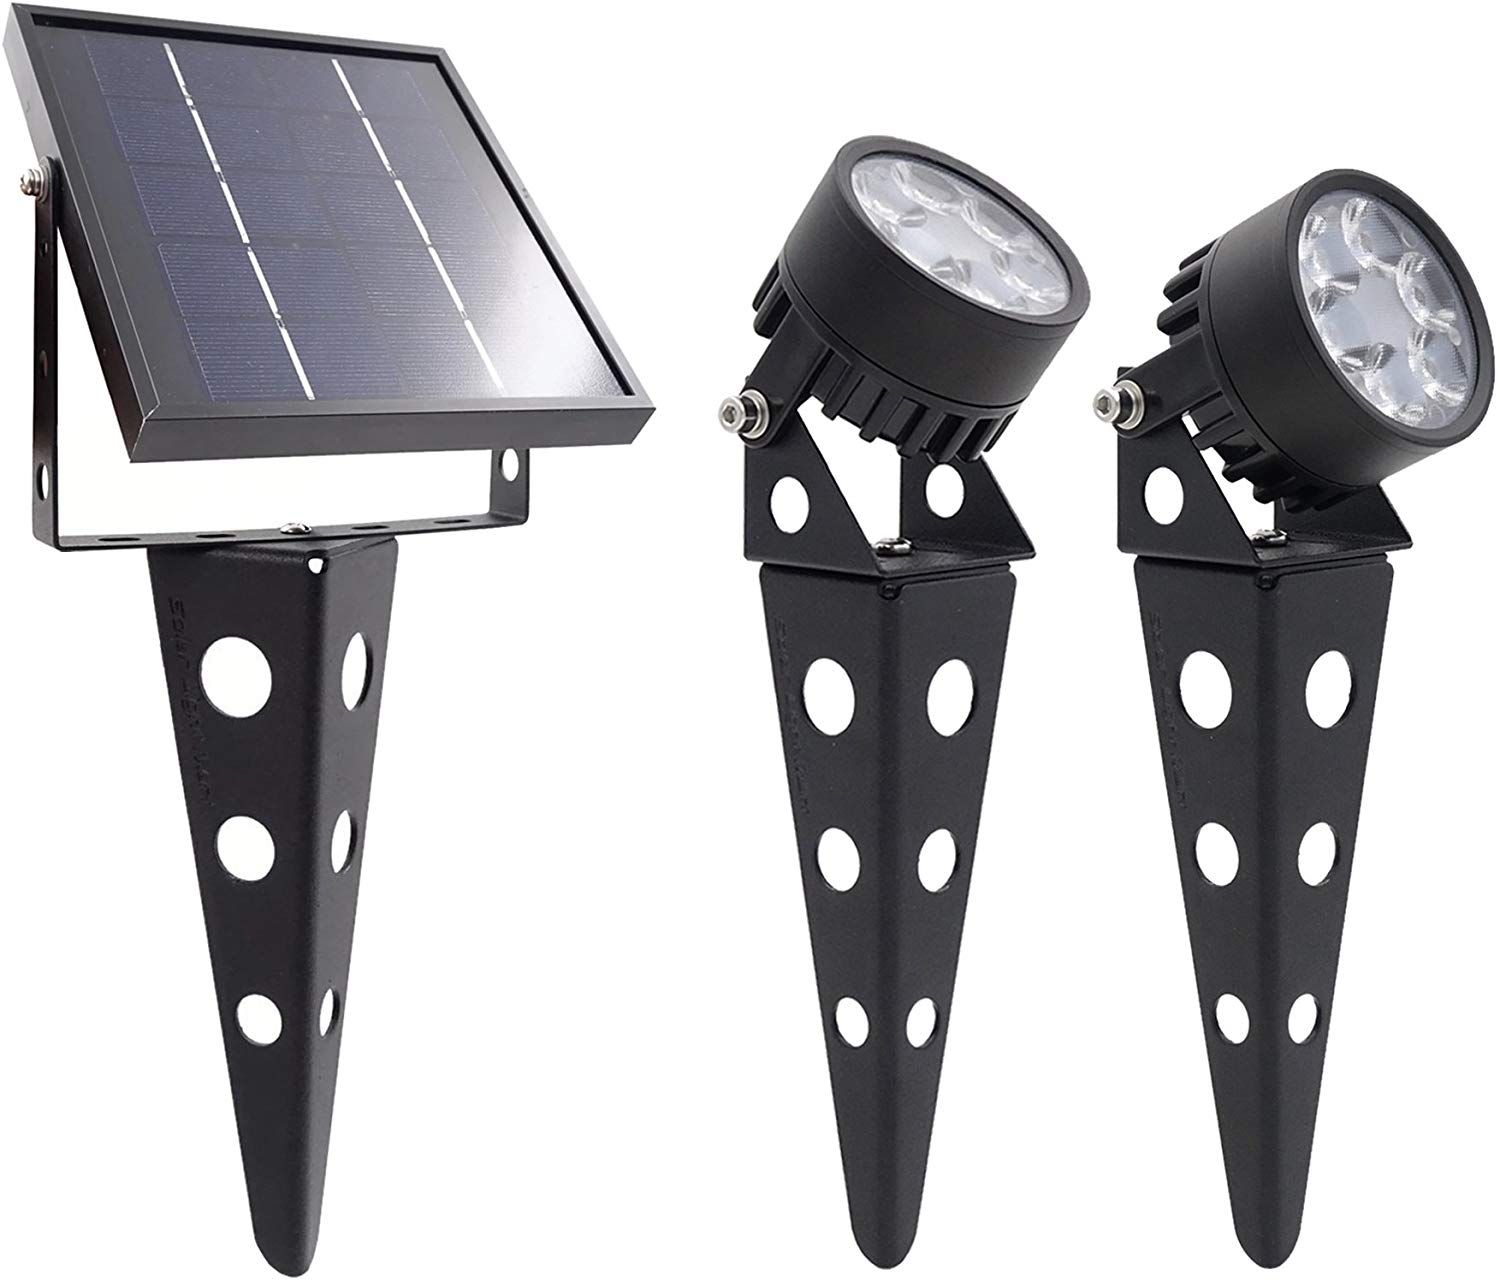 Twin solar-powered LED spotlights come with a separate solar charging panel